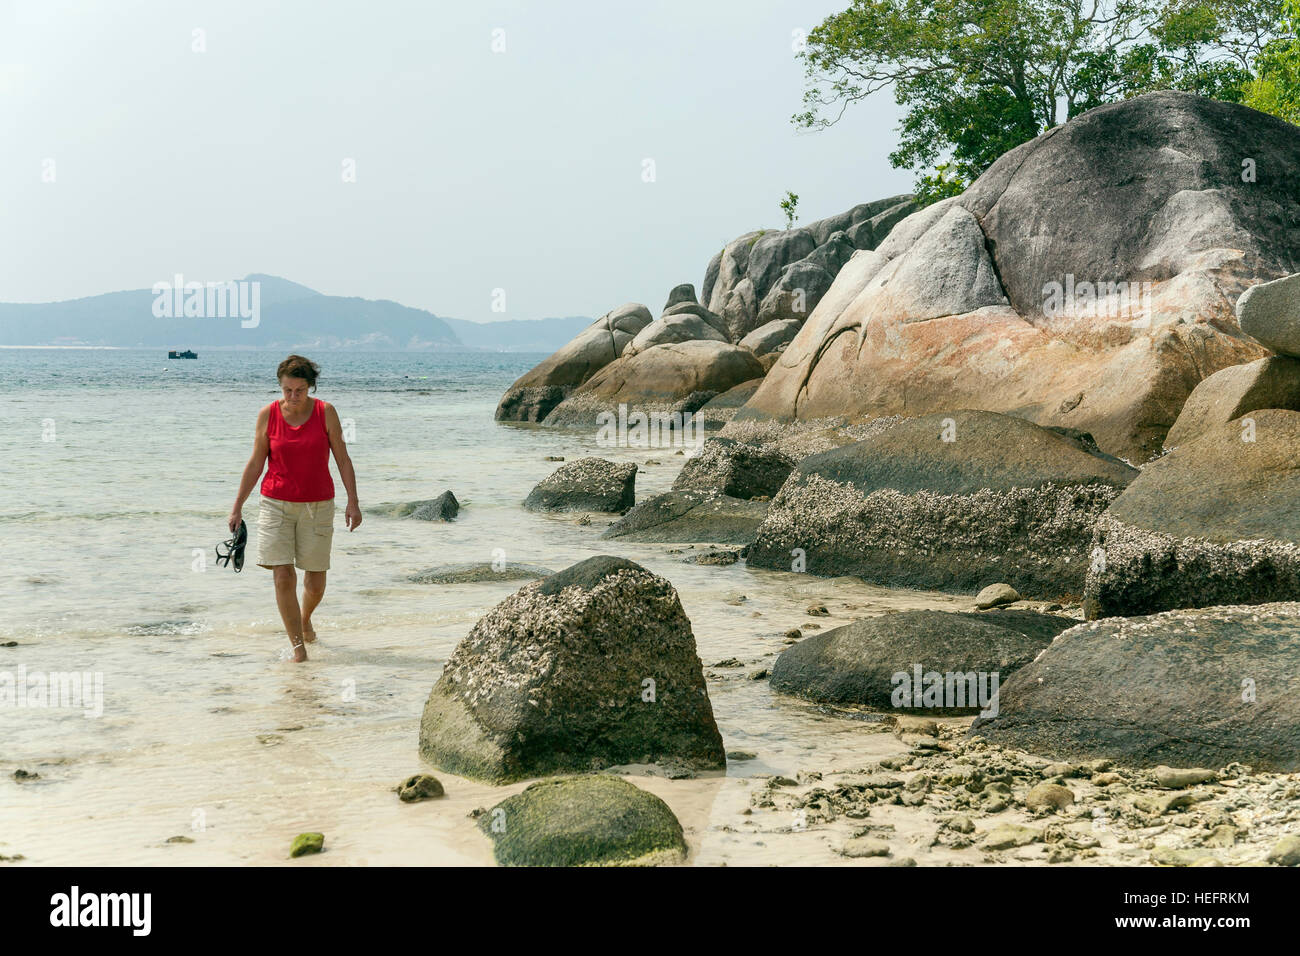 Walking on a tropical beach, Malaysia - Stock Image